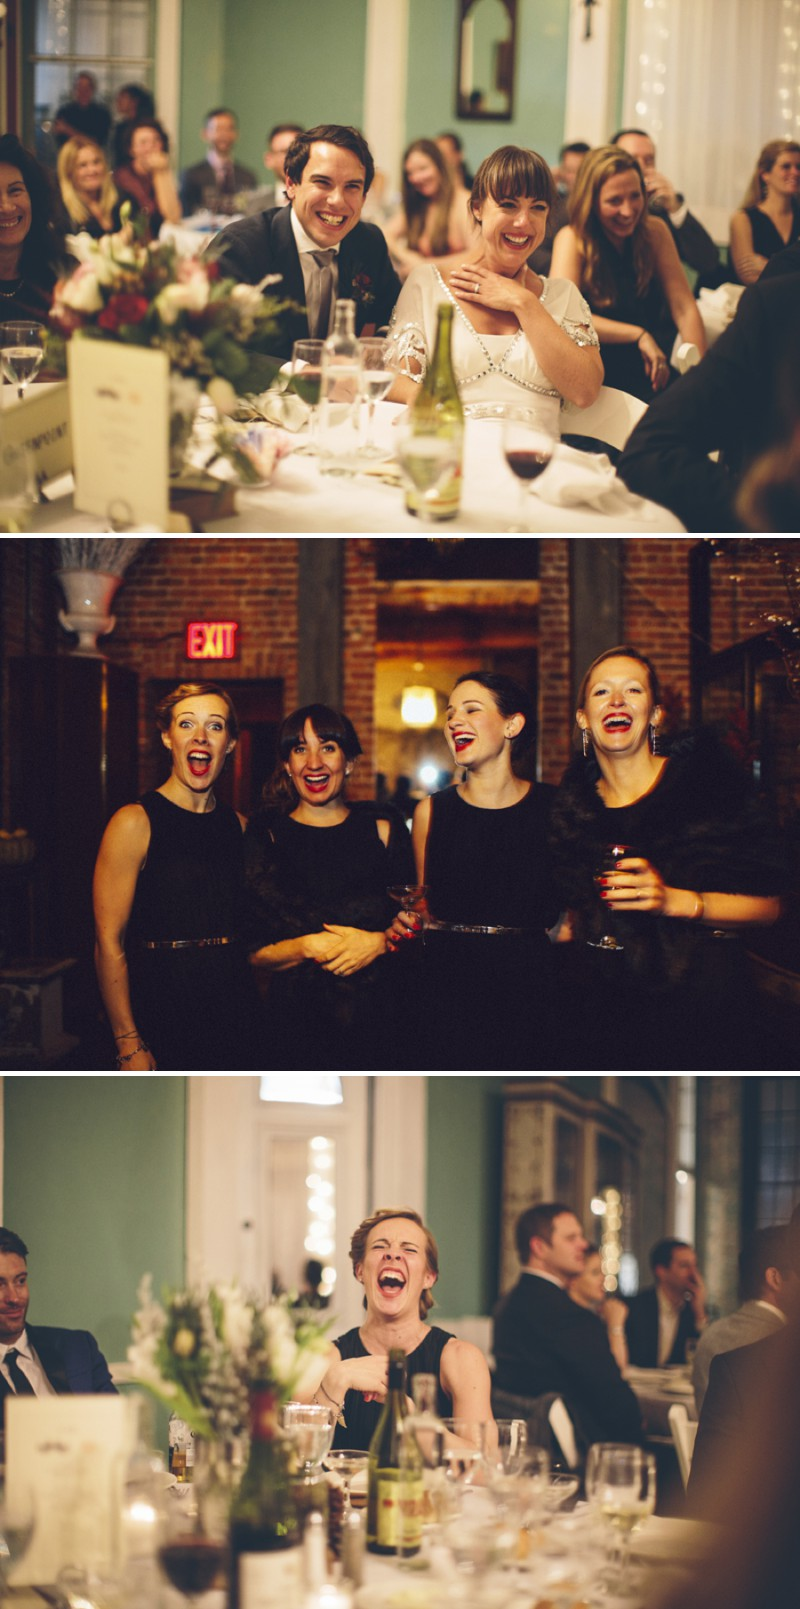 A Christmas Themed Contemporary Wedding At The Metropolitan Building In New York With A Temperley Dress And Black COS Bridesmaid Dresses By Hacker Wedding Photography._0007